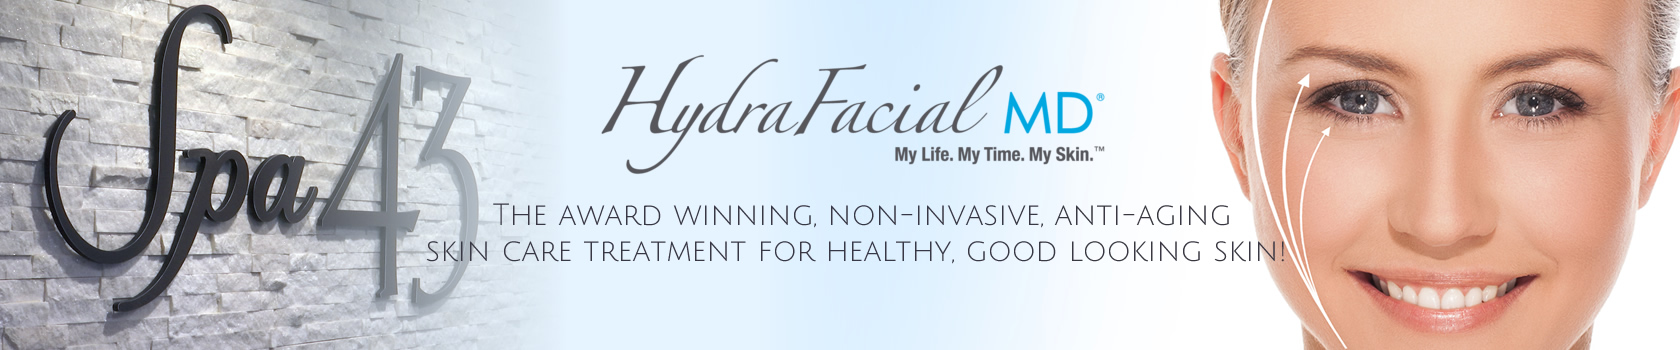 Hydrafacial MD and Elite Clinton Township, MI | Medical